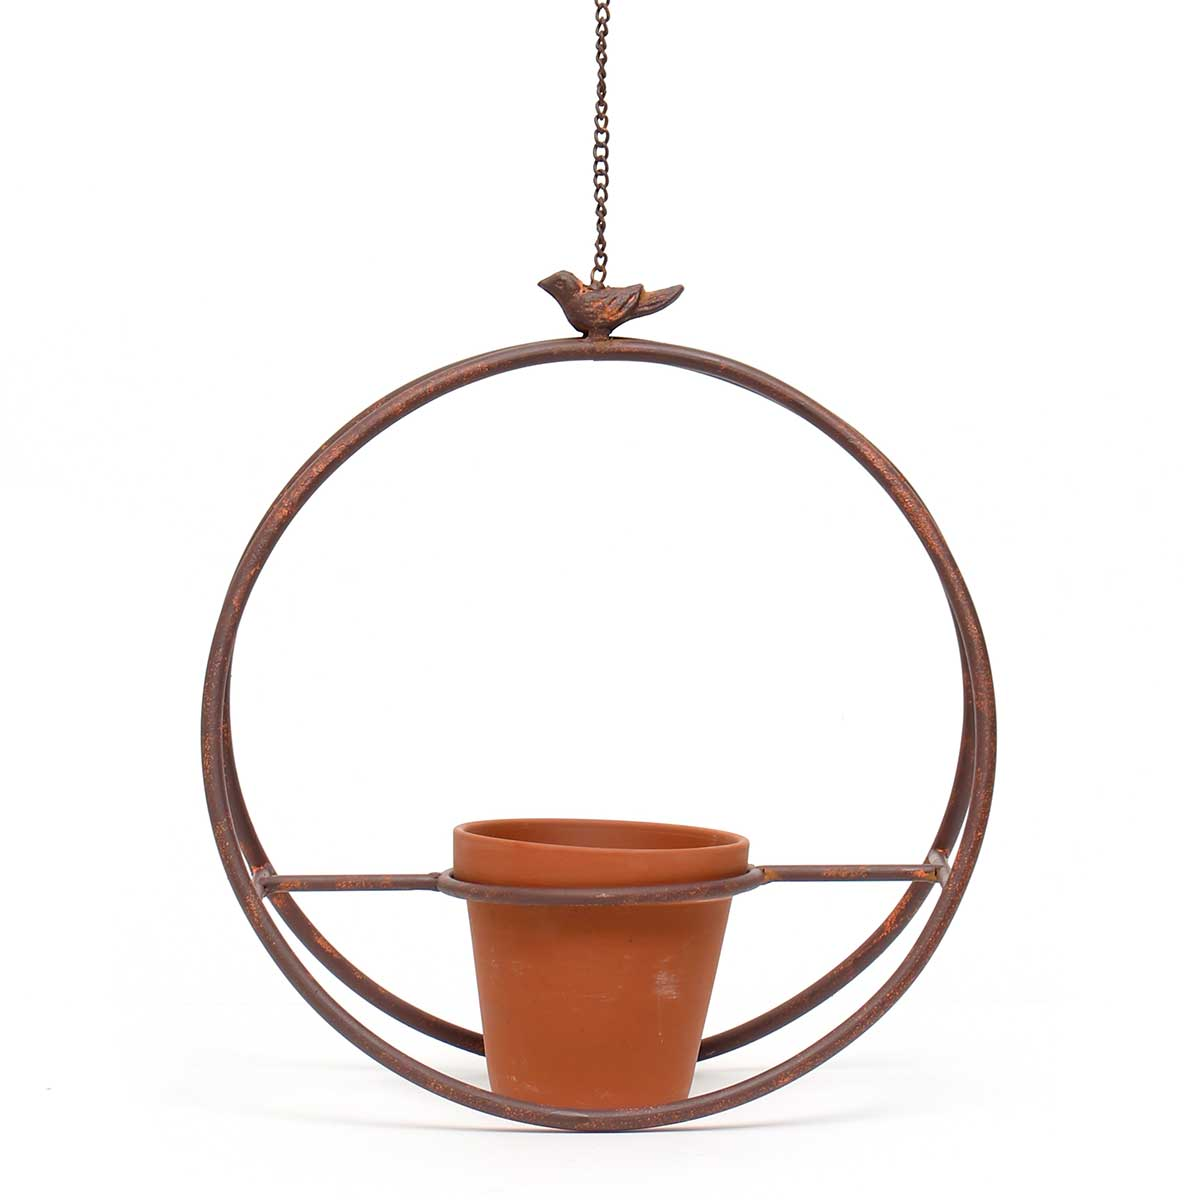 "METAL GARDEN HANGING CIRCLE WITH 20"" CHAIN/HOOK AND CLAY POT"